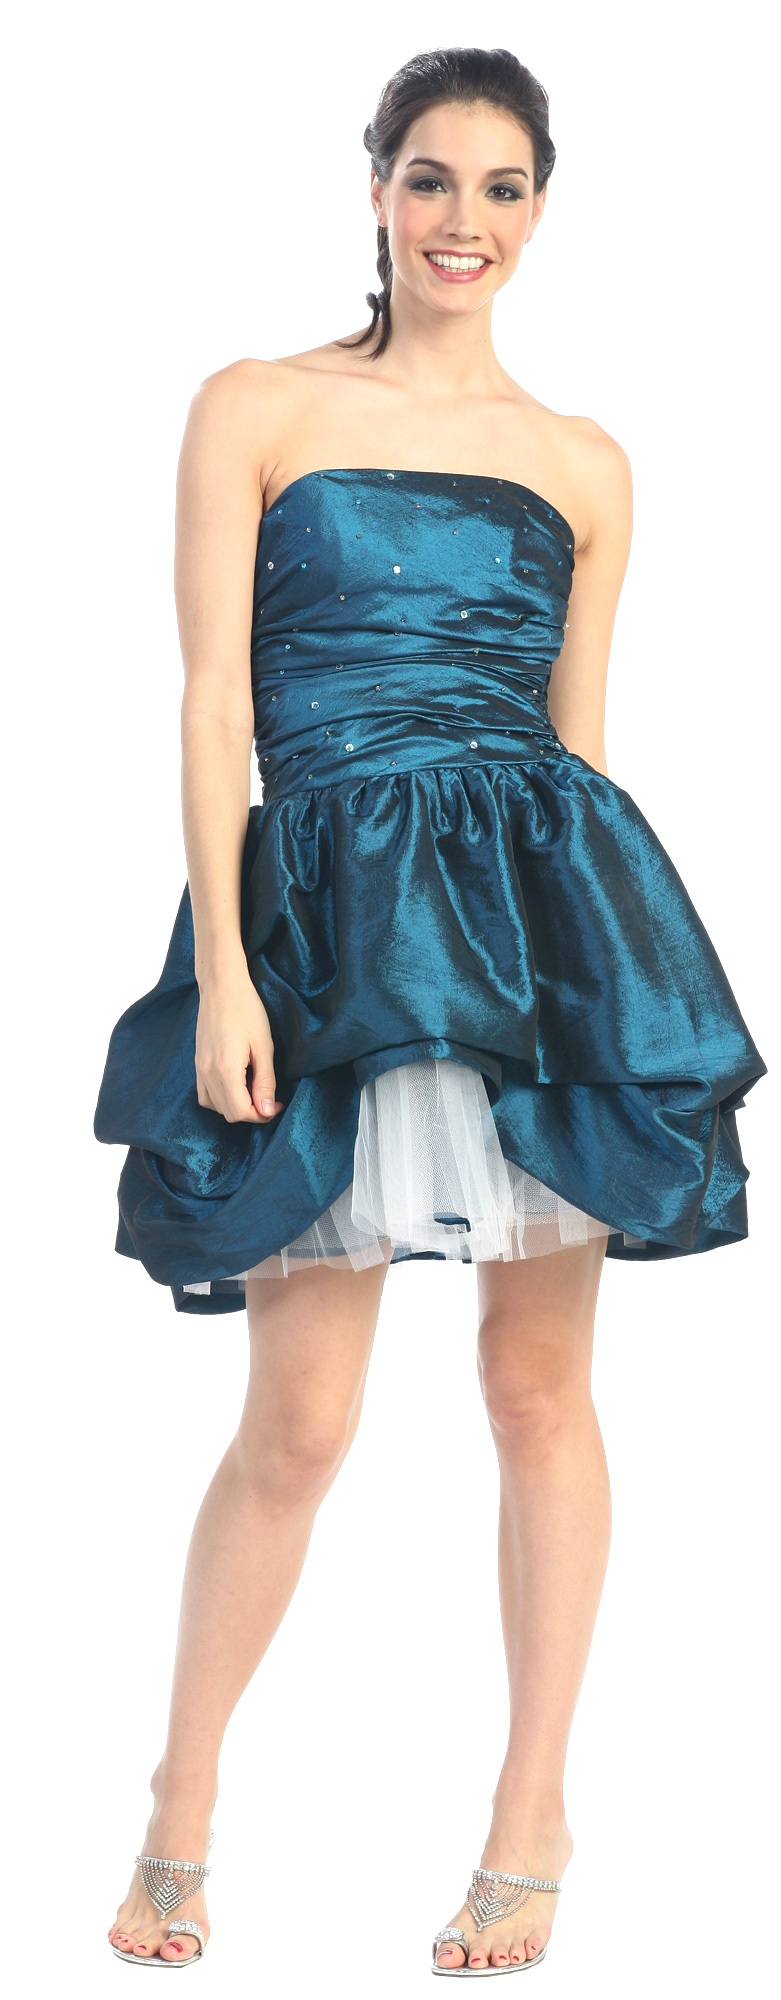 http://www.robesgallery.com/images/robe%20soiree%20courte%20cocktail%20mariage%20052305%20bleu.jpg